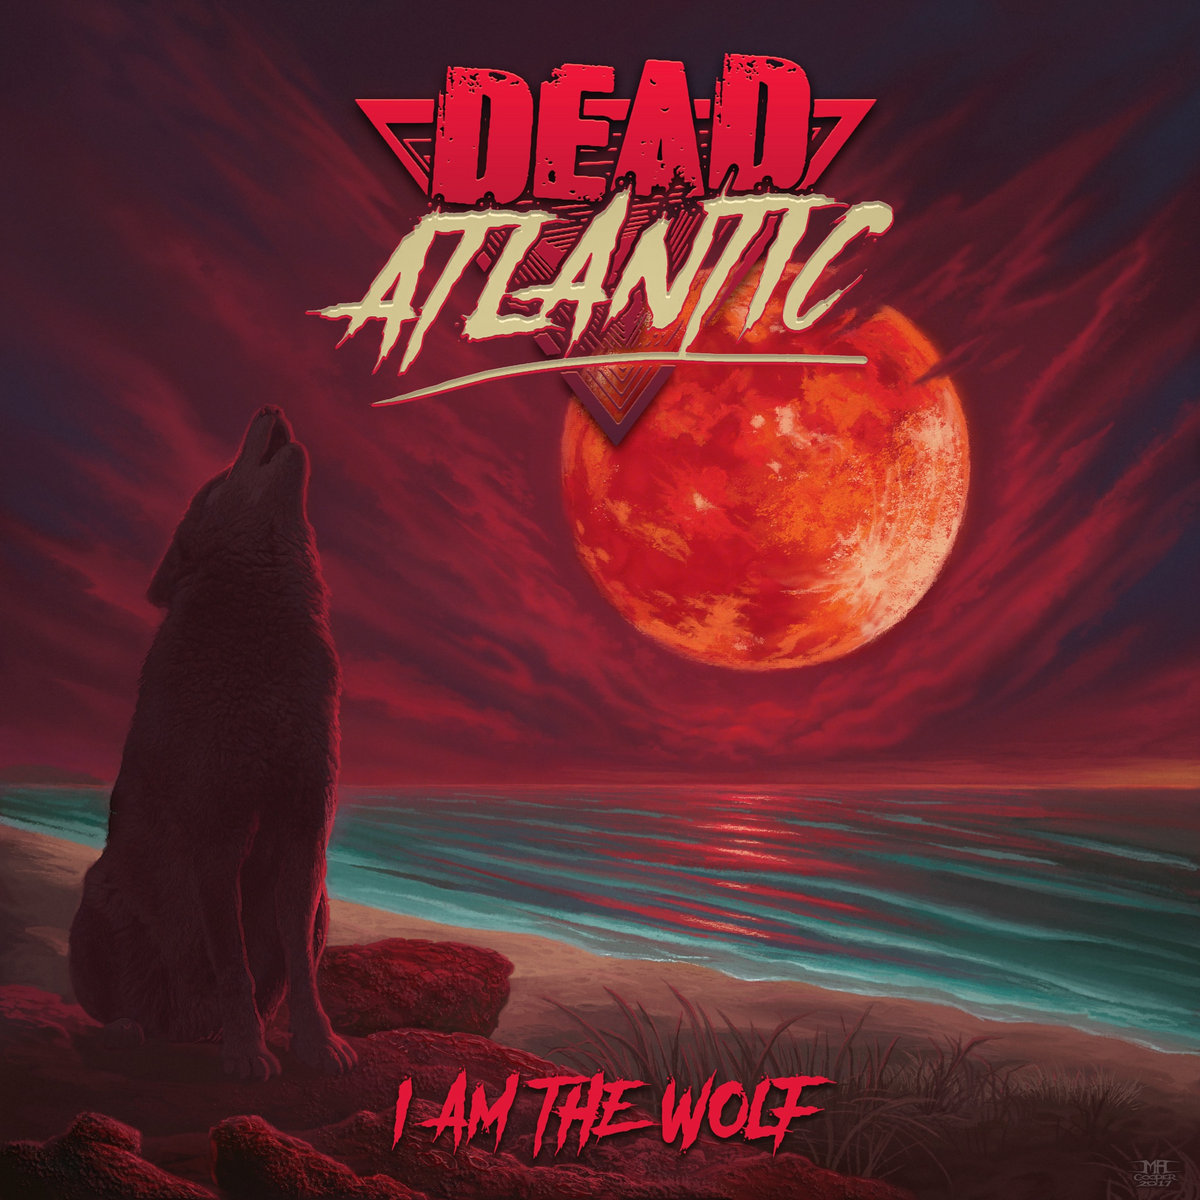 www.facebook.com/deadatlantic